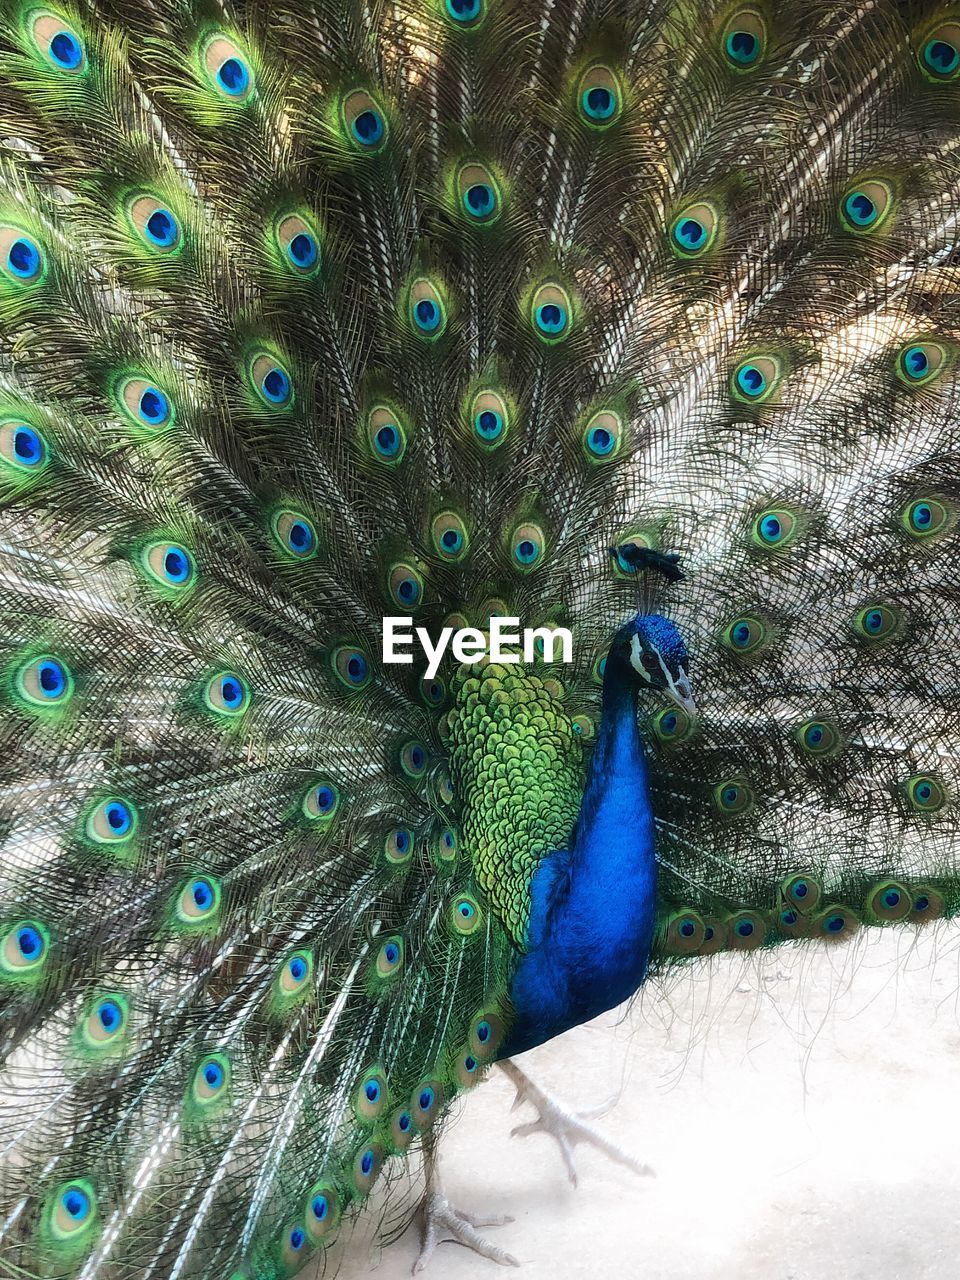 peacock, bird, feather, one animal, animal, animal wildlife, animals in the wild, vertebrate, animal themes, peacock feather, blue, fanned out, no people, day, beauty in nature, close-up, nature, outdoors, male animal, green color, animal head